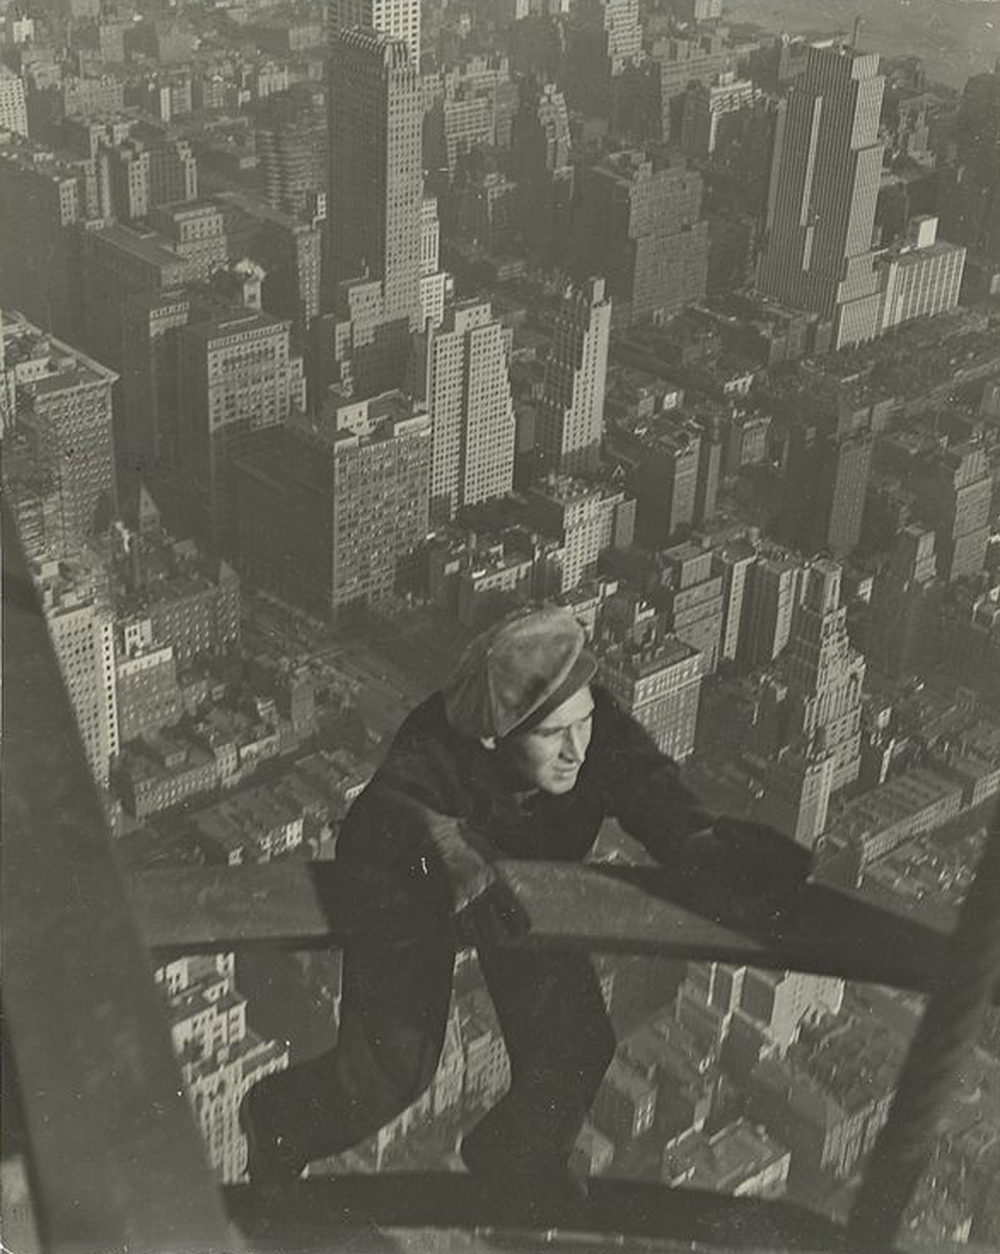 A worker hanging on to two steel beams, c. 1930. Photograph by Lewis Wickes Hine. New York Public Library, The Miriam and Ira D. Wallach Division of Art, Prints and Photographs.